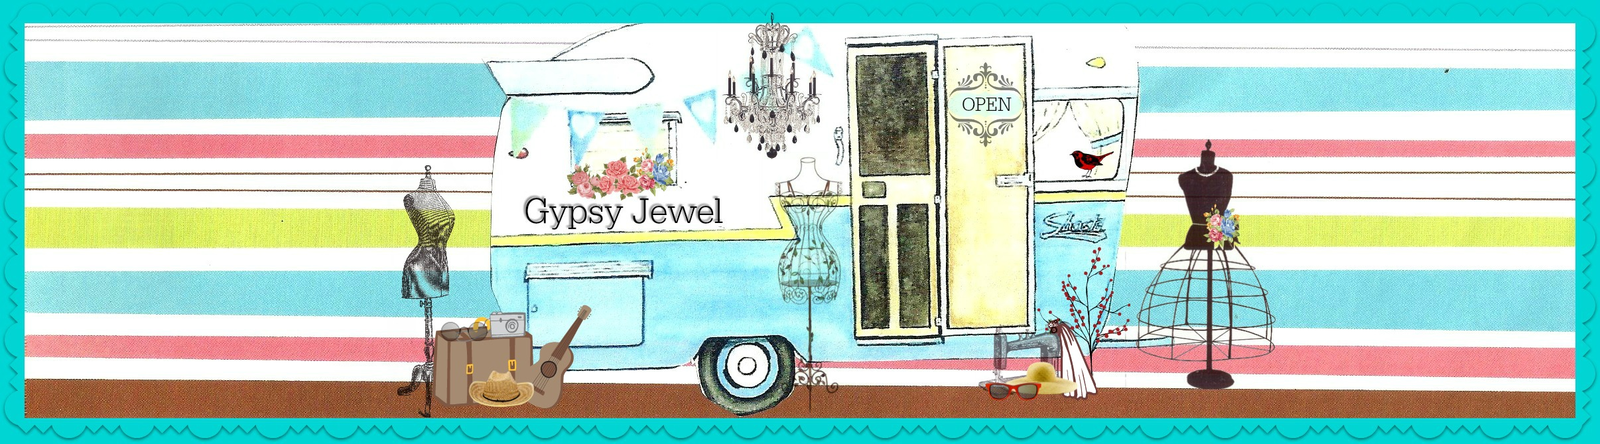 Gypsy Jewel